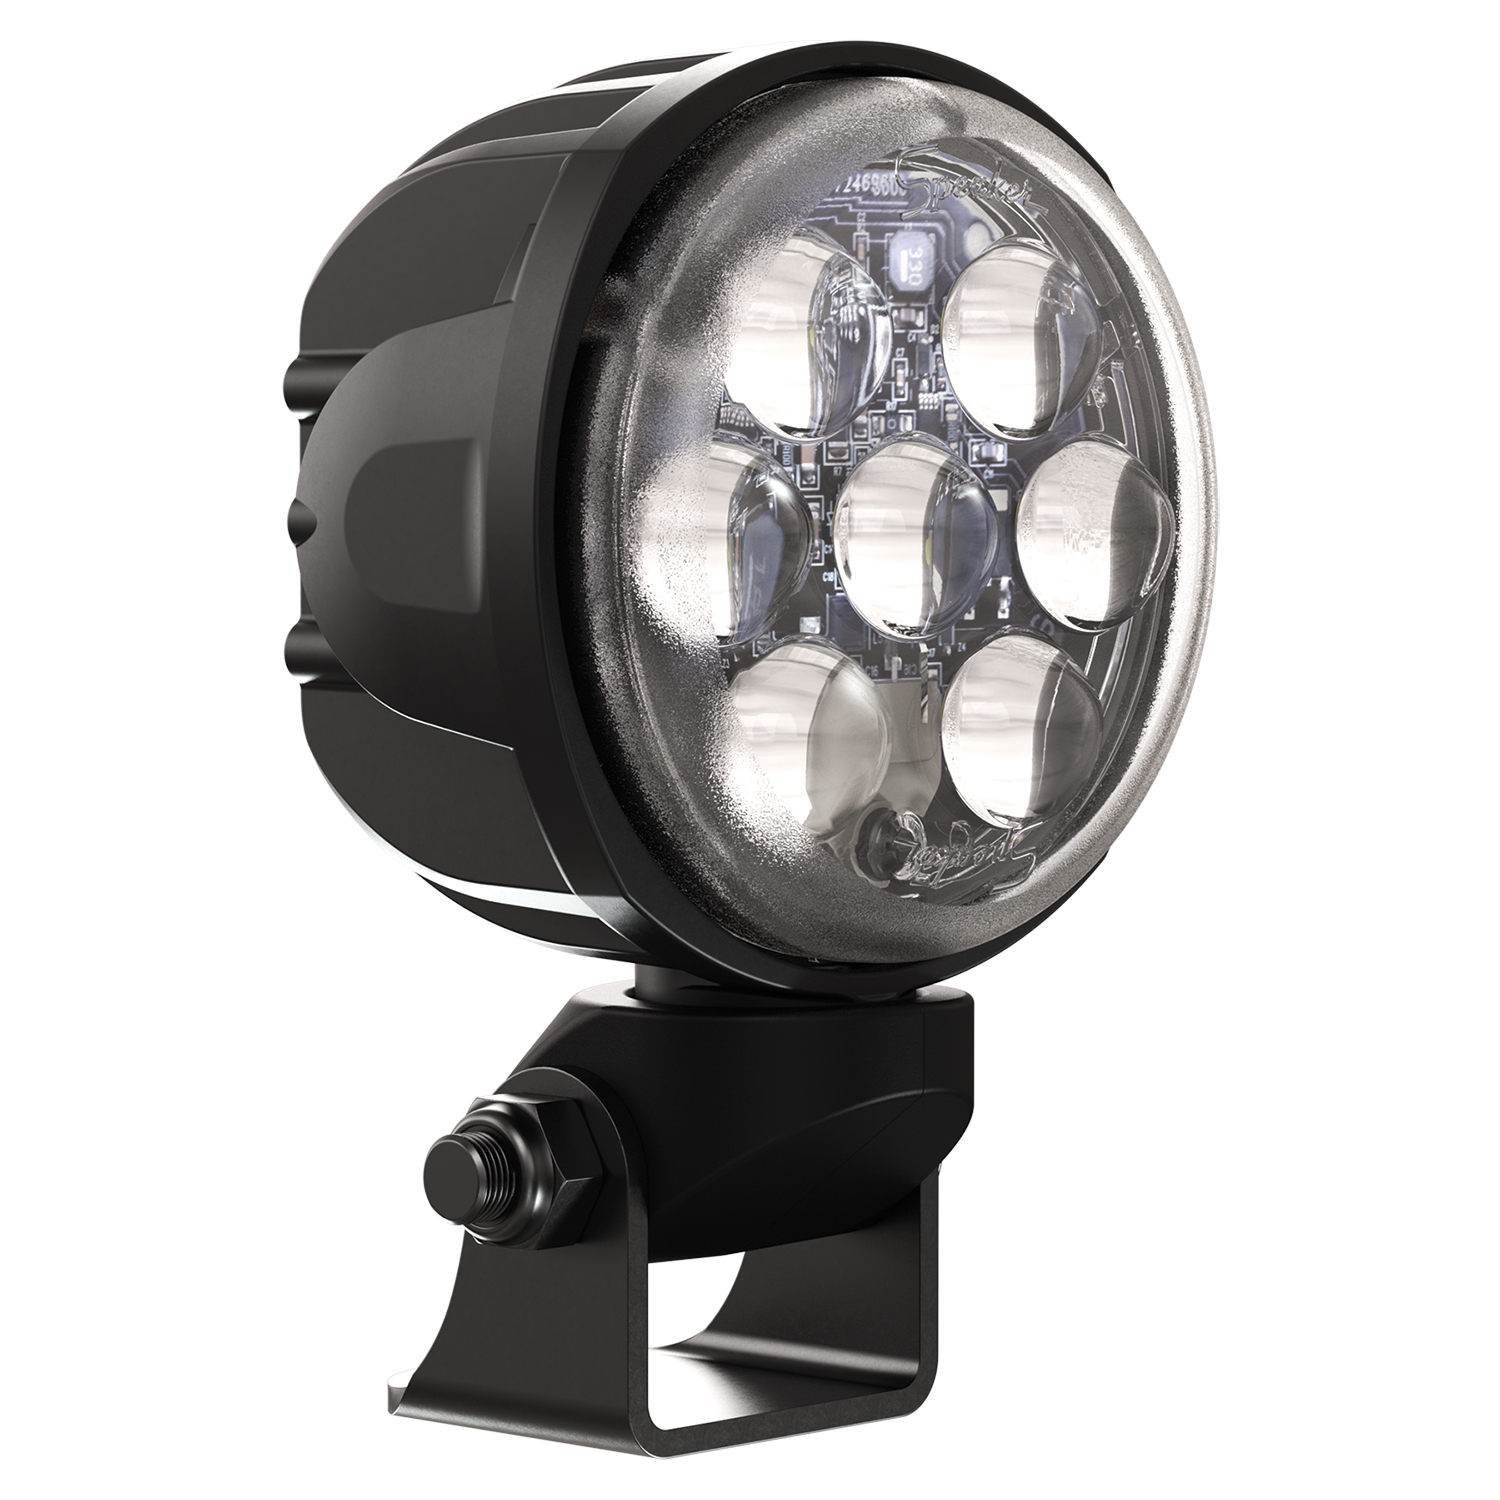 LED Safety Light Model 4415 3/4 View